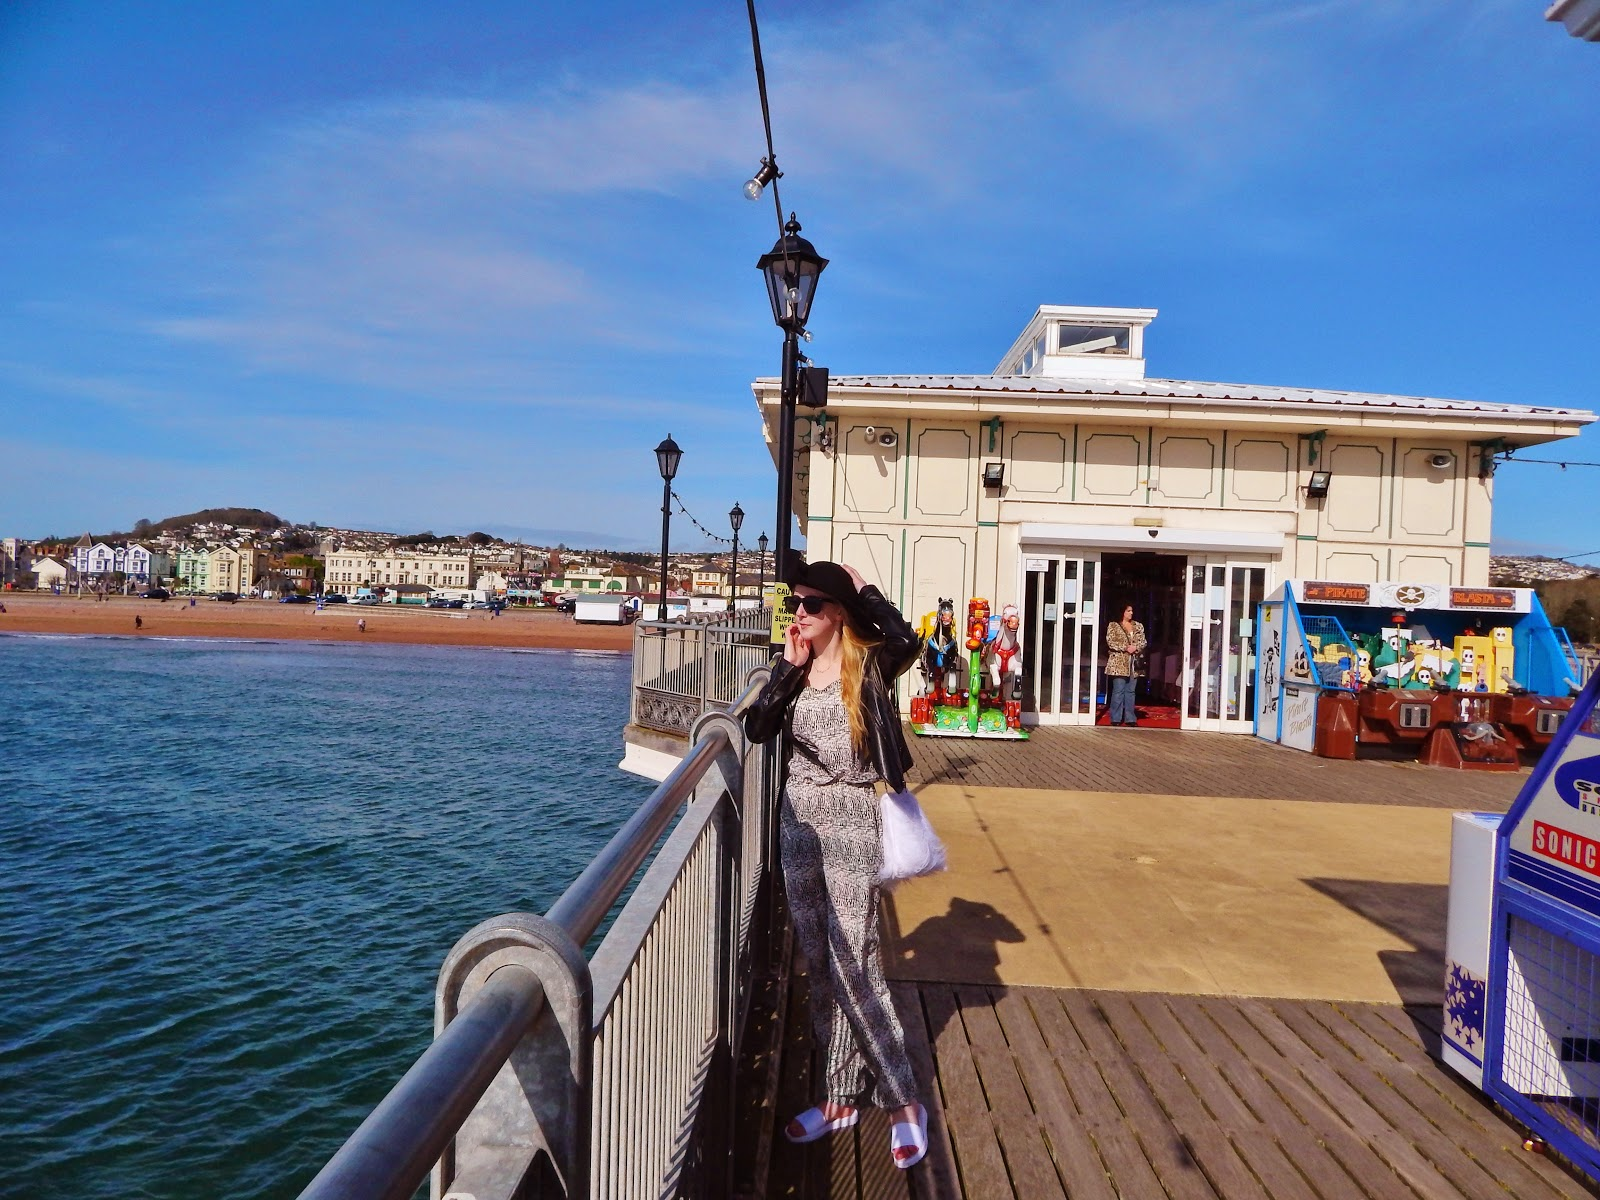 Dressed Down In The 70's at Paignton Pier - Part One